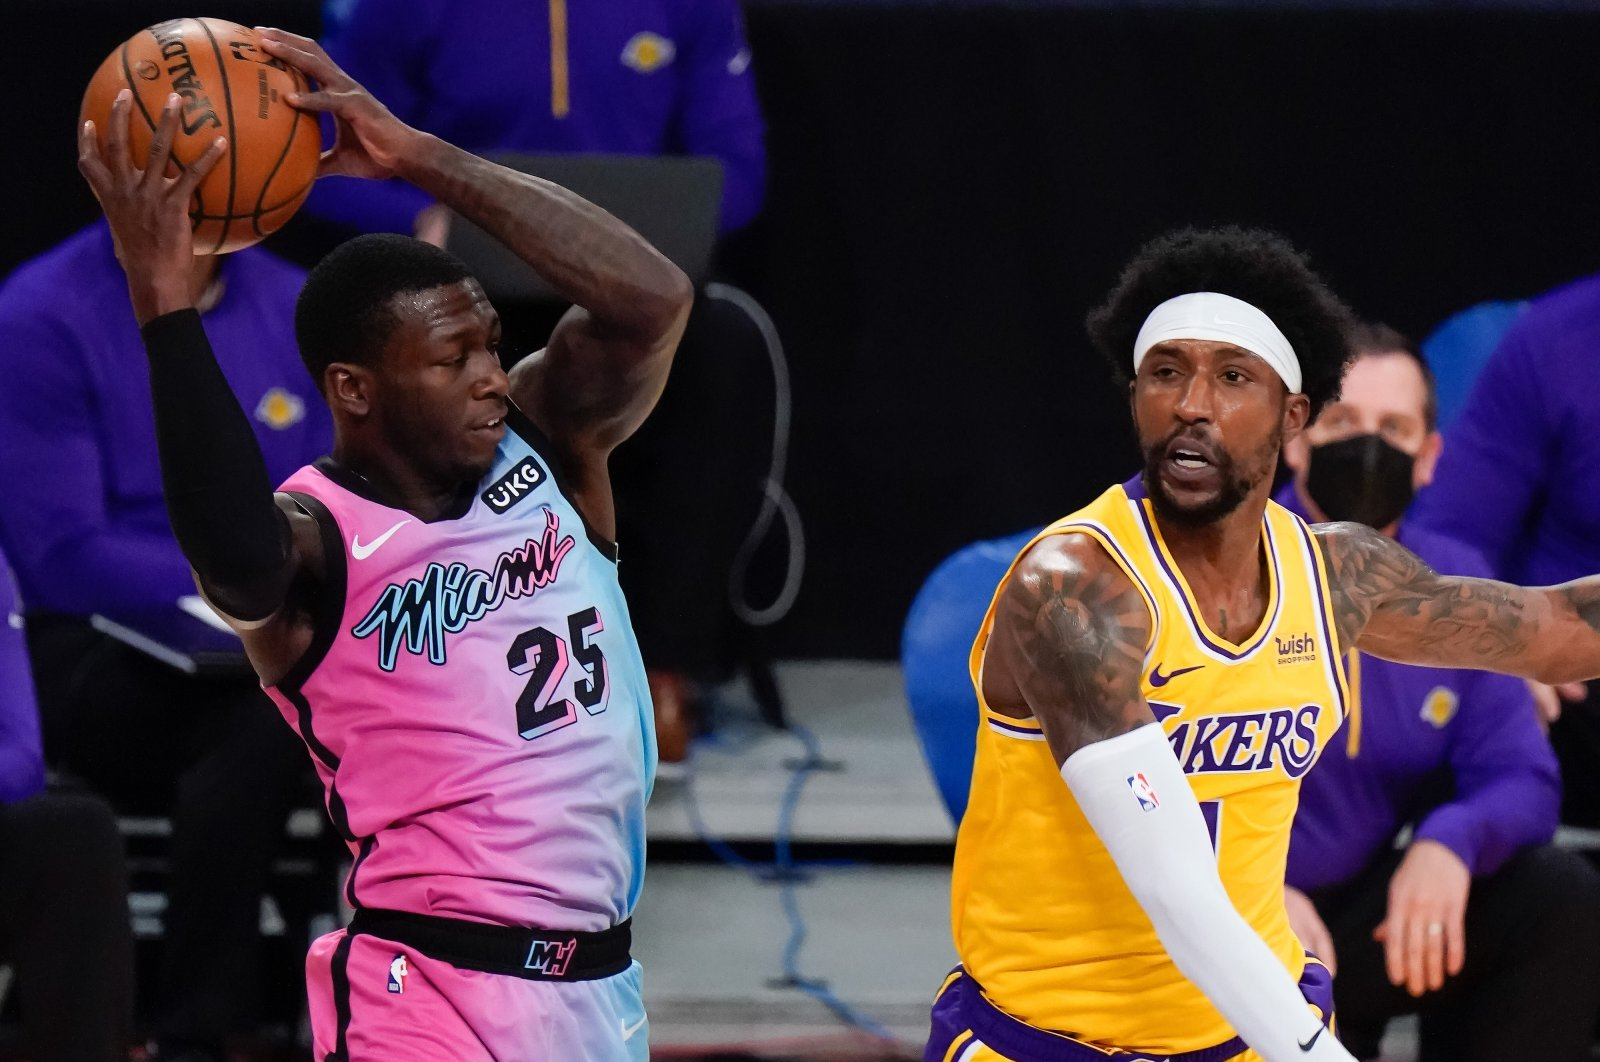 Miami Heat guard Kendrick Nunn (L) grabs a rebound away from Los Angeles Lakers guard Kentavious Caldwell-Pope during an NBA match at Staples Center, Los Angeles California,Feb 20, 2021. (Reuters Photo)